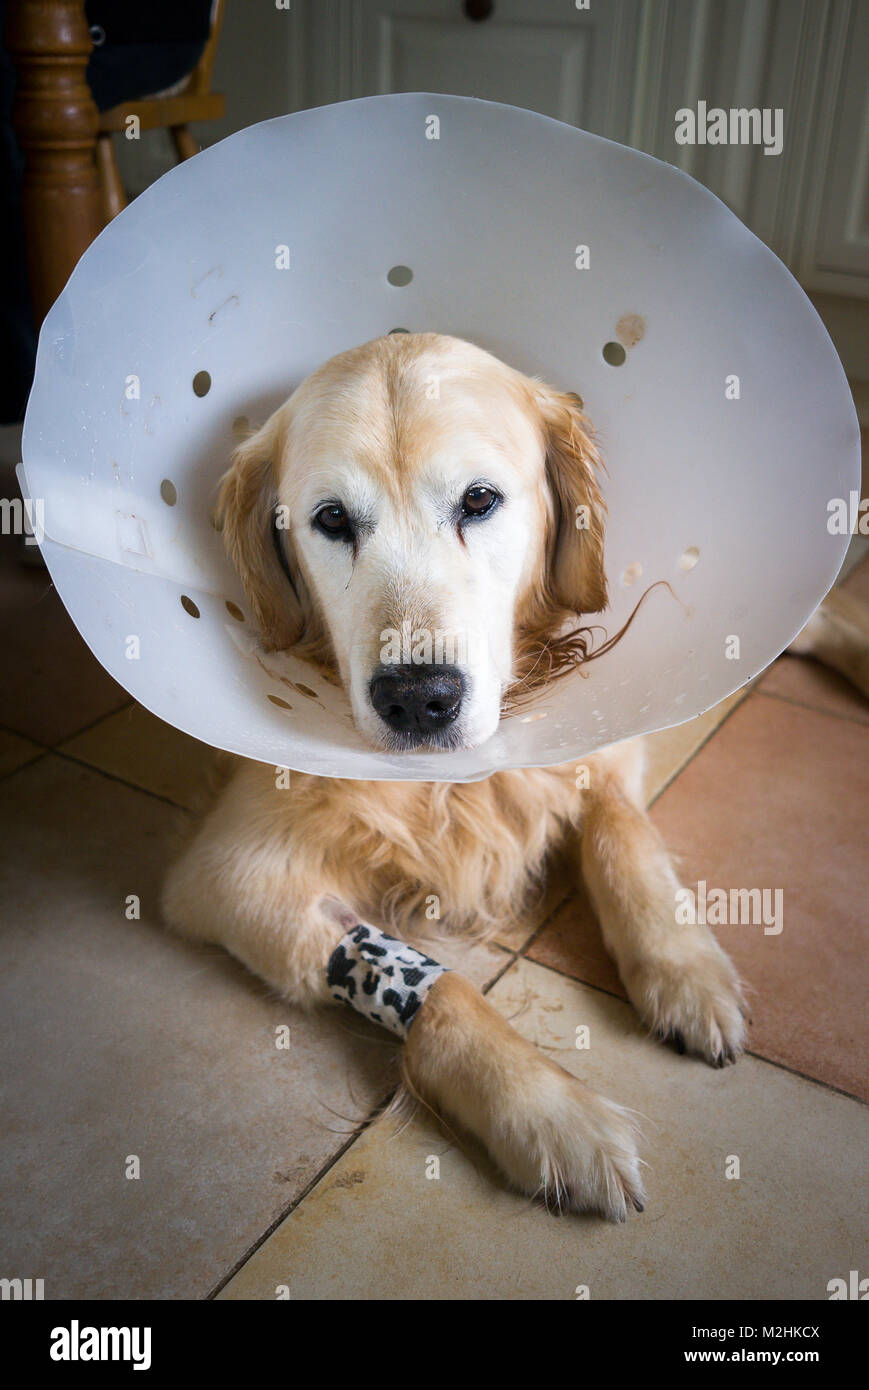 Golden Retriever dog wearing a post-operation surgical collar wo help his recovery in UK - Stock Image